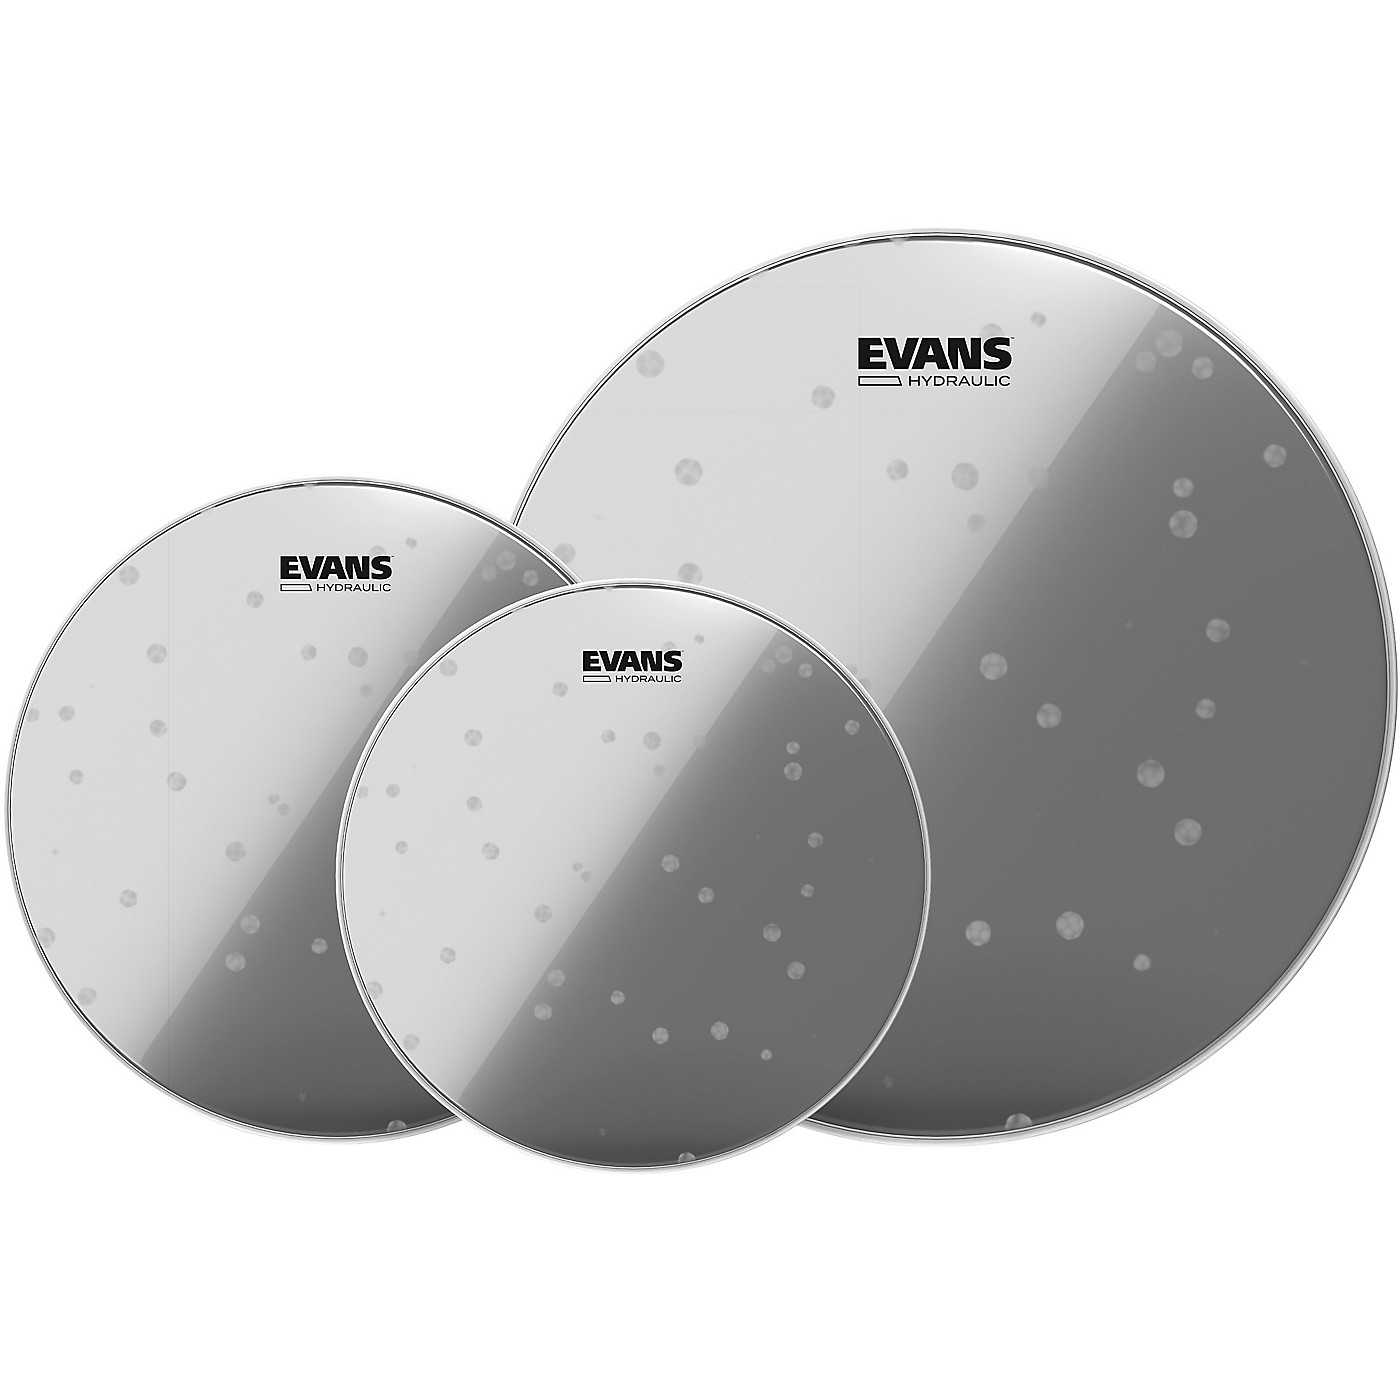 Evans Hydraulic Glass Drumhead Pack thumbnail